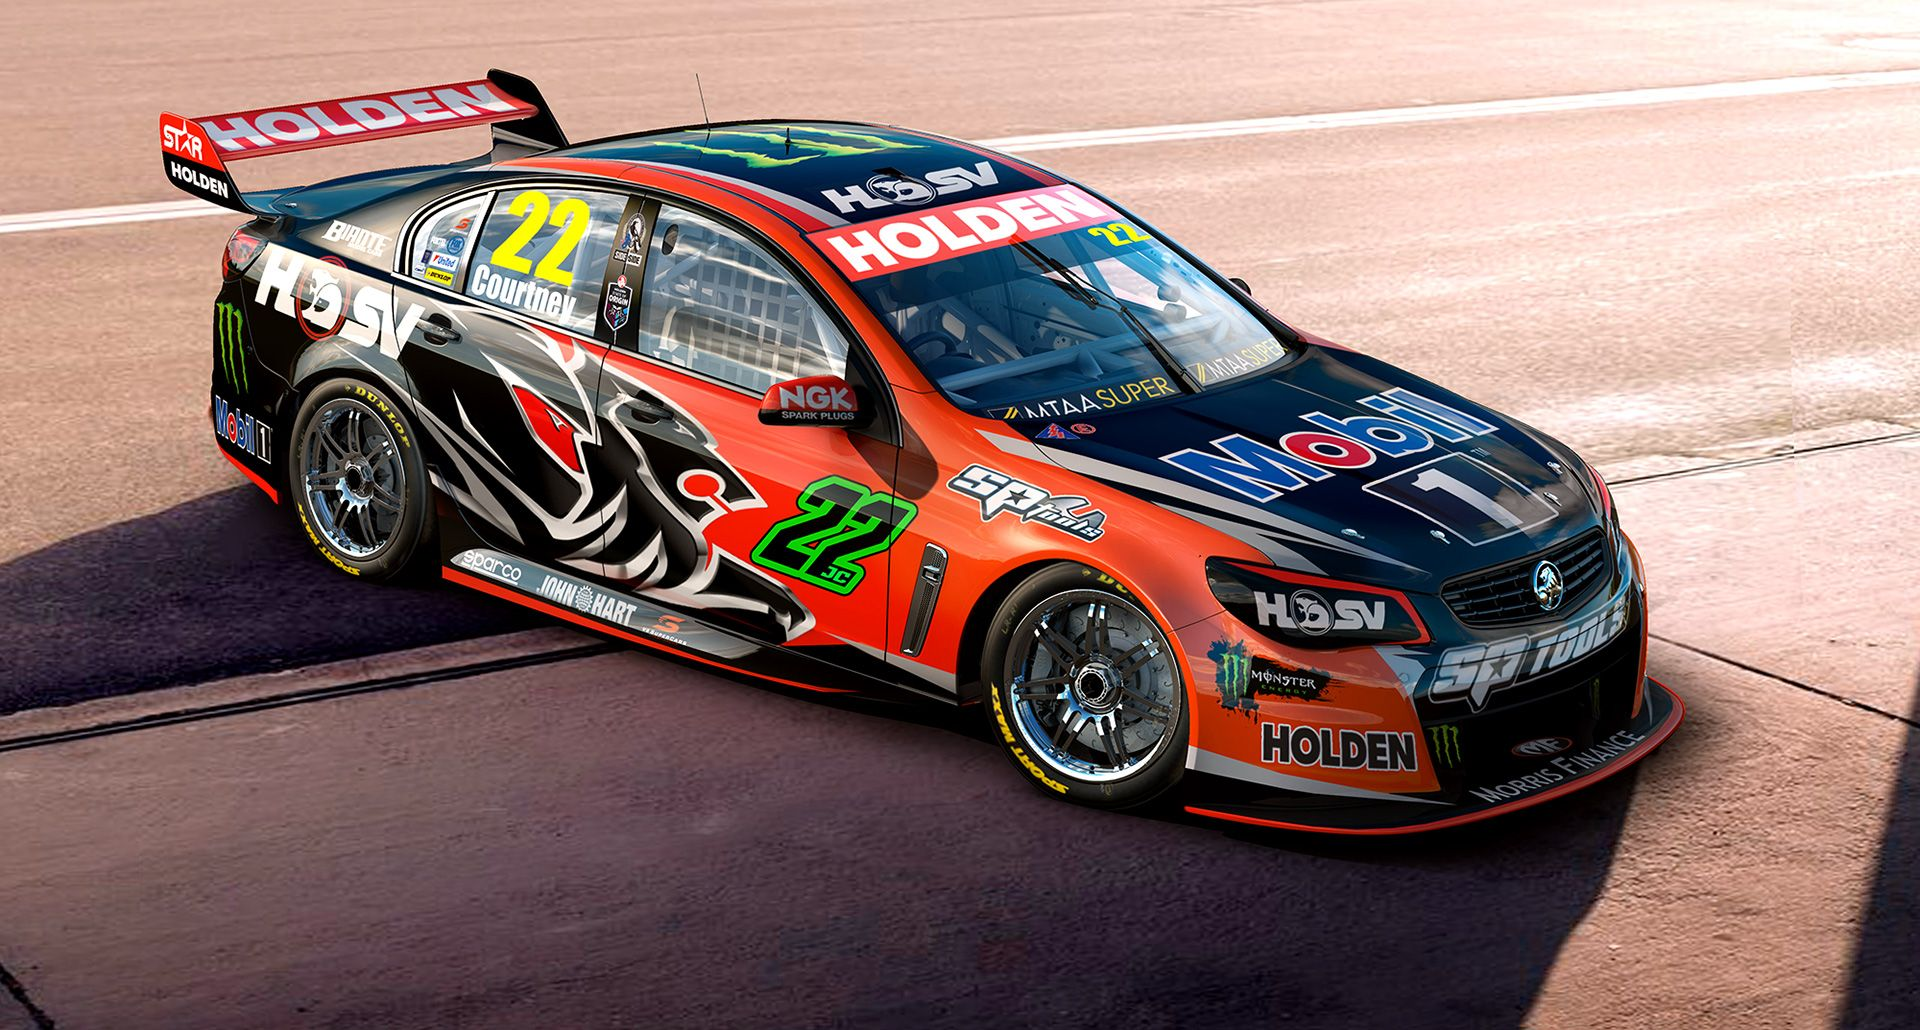 Pin By Andrew Gloistein On Holden Racing Team Wallpapers Super Cars V8 Supercars Holden